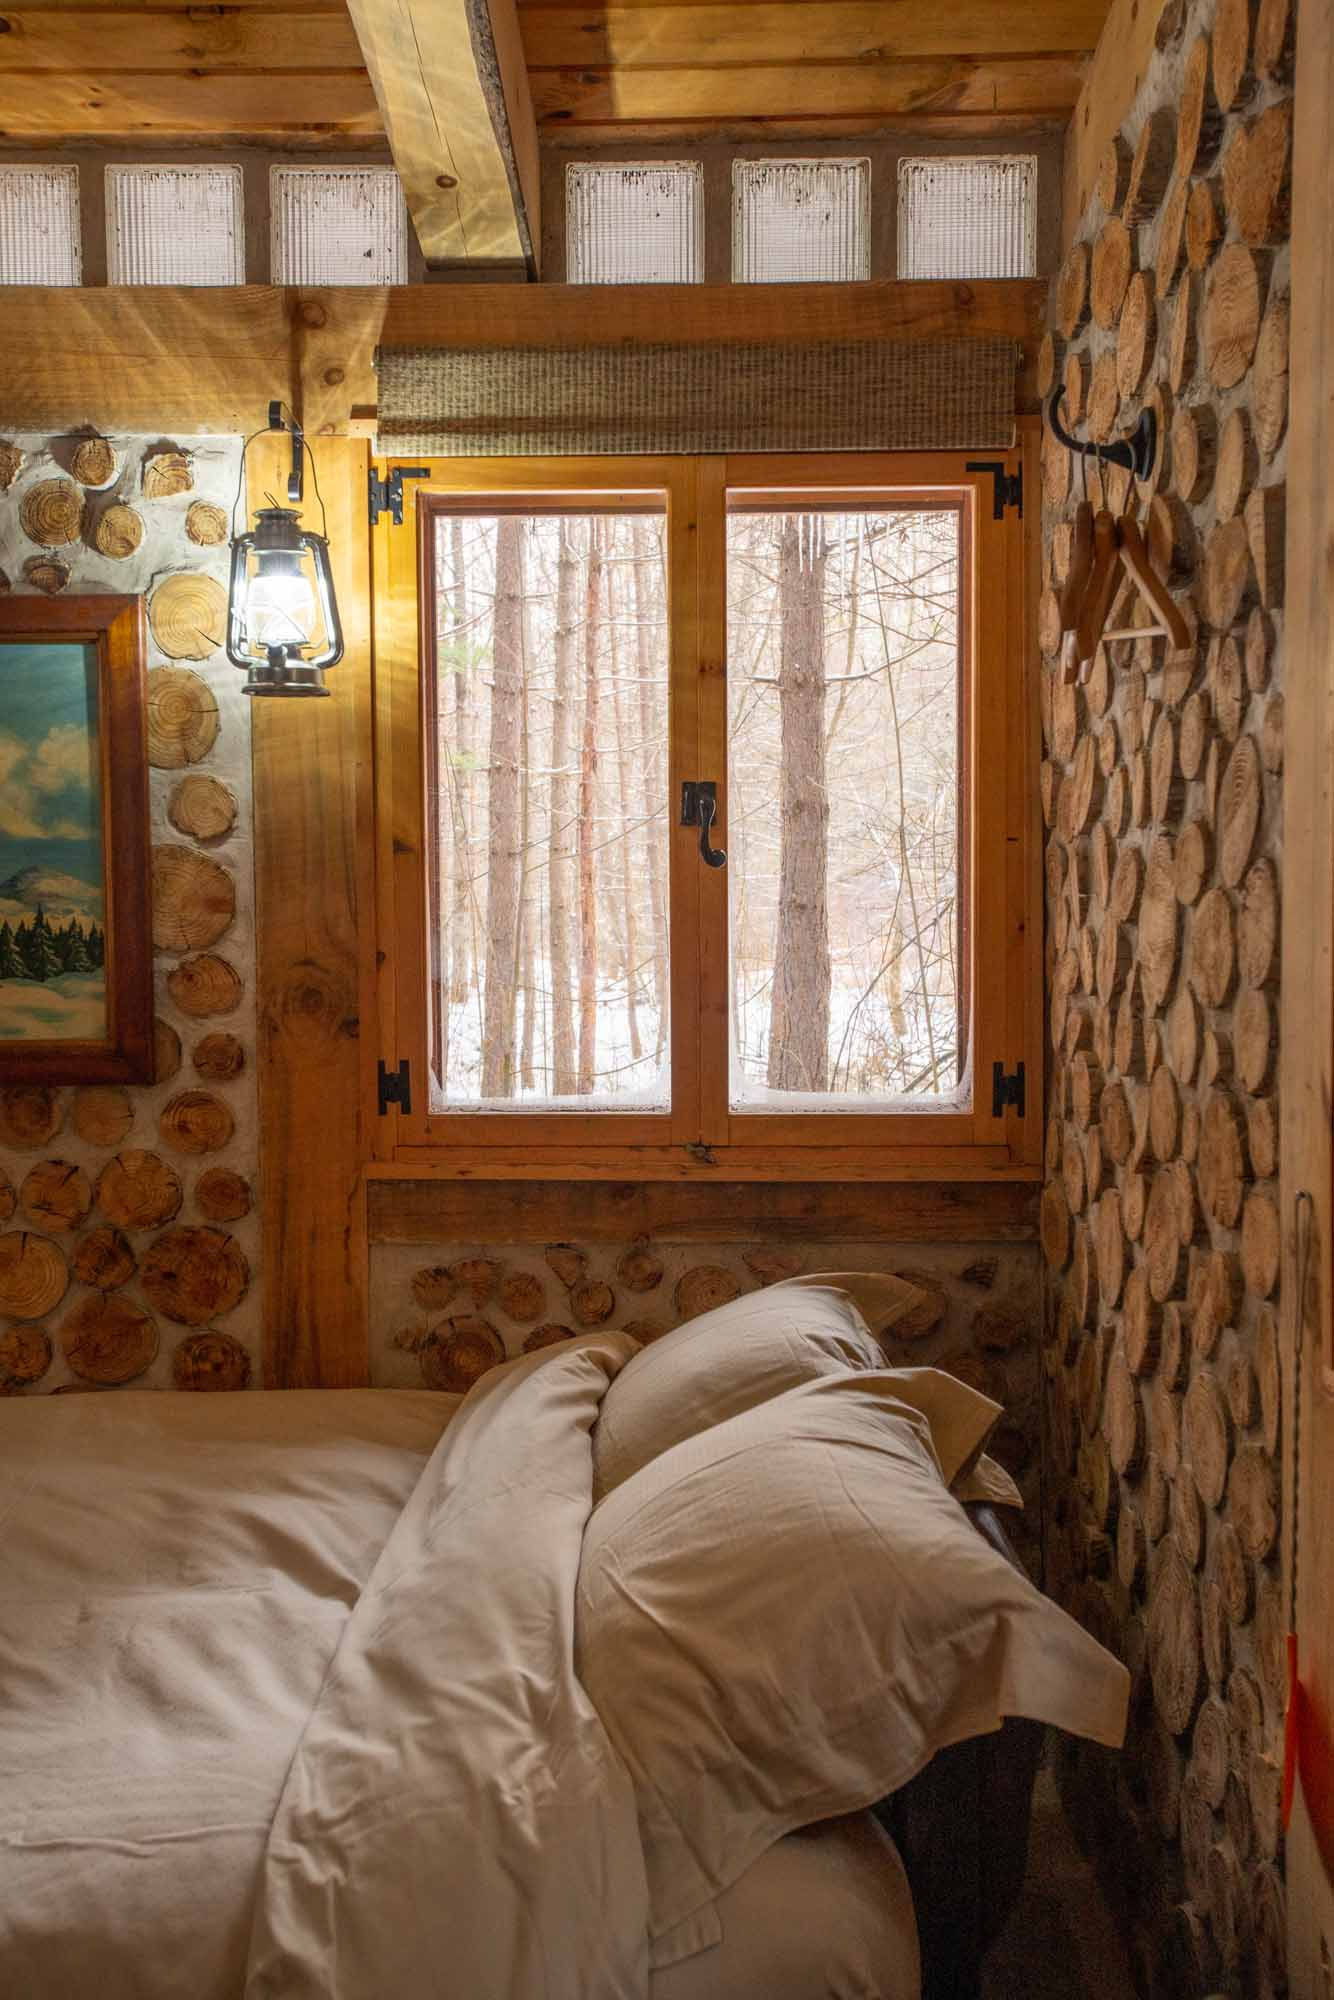 The-Cordwood-Cabin-An-Accessible-Retreat-from-the-21st-Century-bed-and-window-photo-by-Kristin-Schnelten